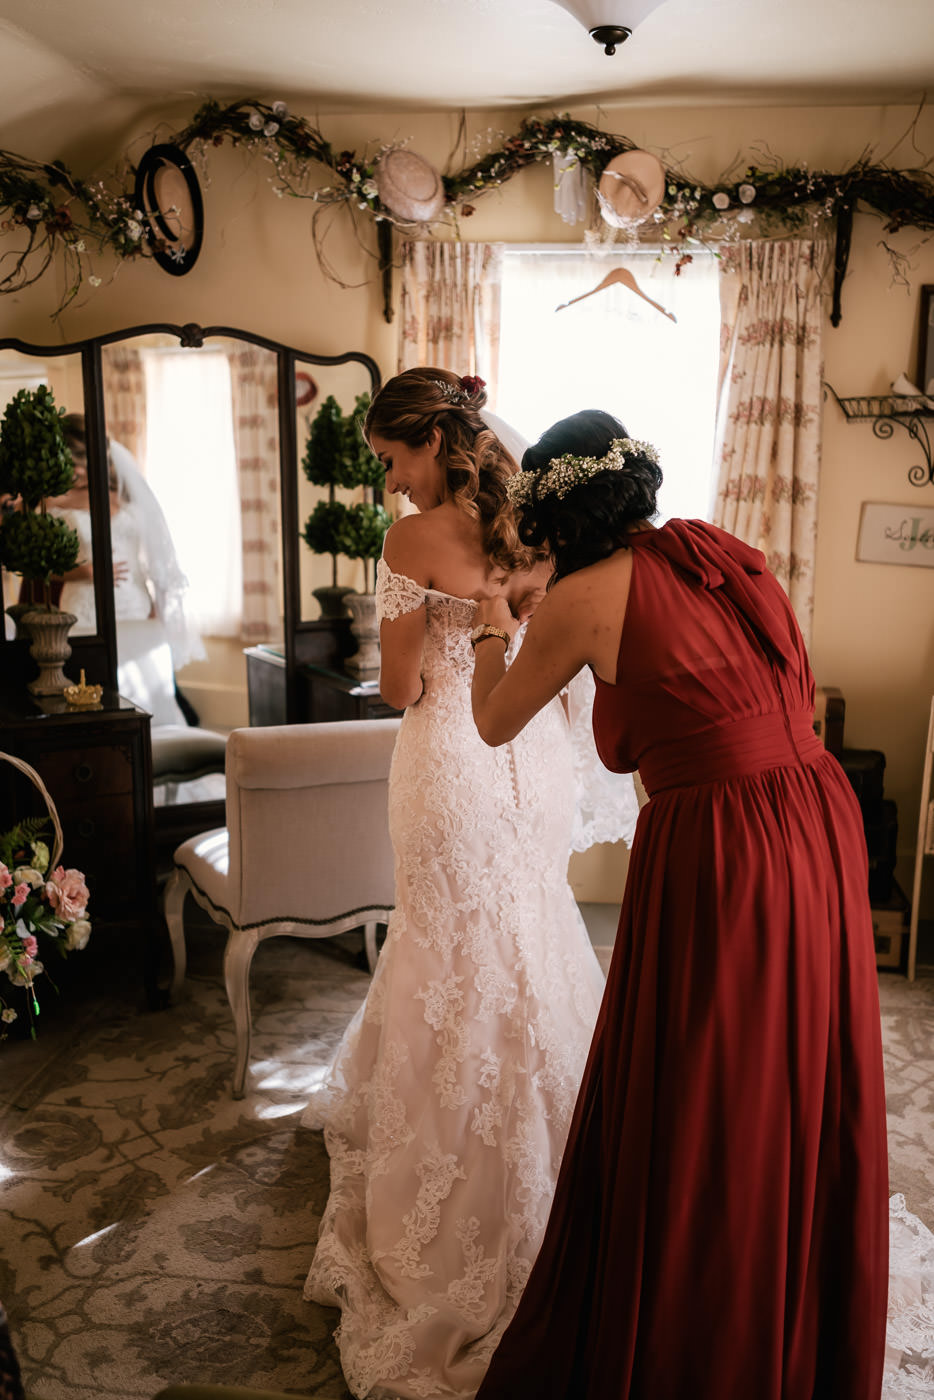 Maid of Honor helps bride put on her wedding dress for her big day.